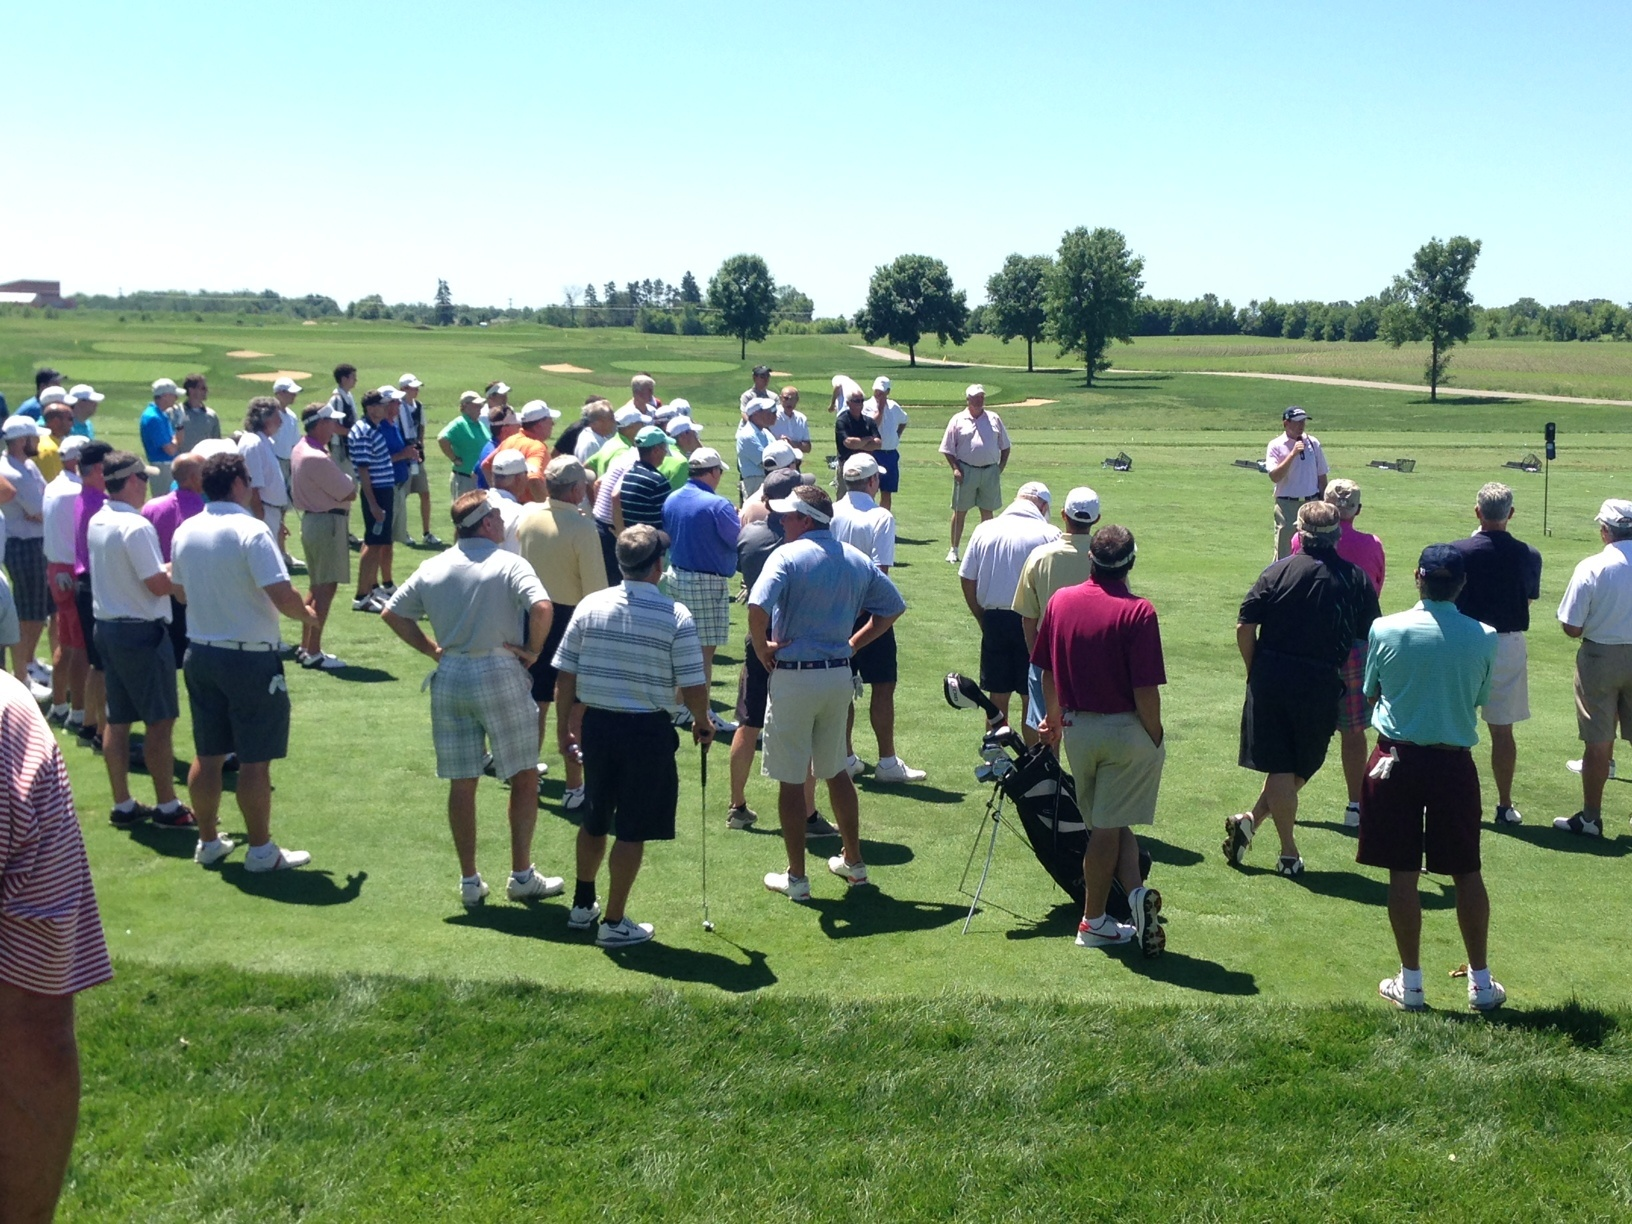 Golfers listen to rules before a private golf tournament at Hazelitne National Golf Club